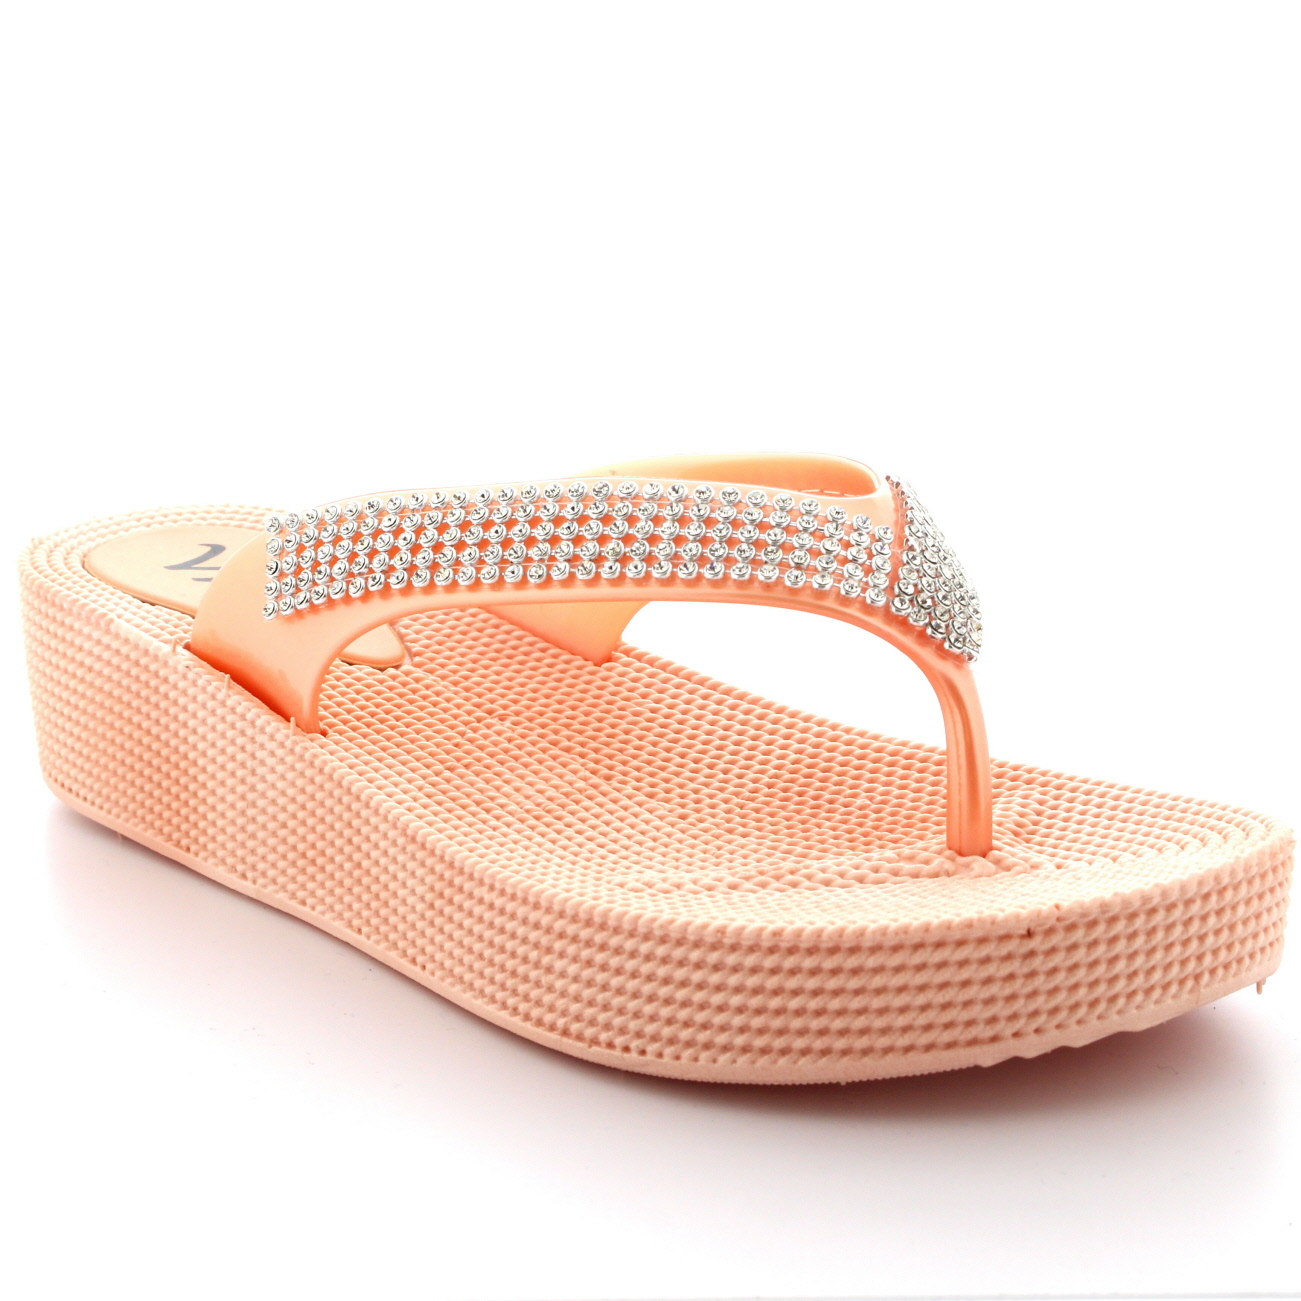 db1e48bf4ce60 Womens Beach Holiday Thong Sandals Jelly Wedge Heel Diamante Flip ...